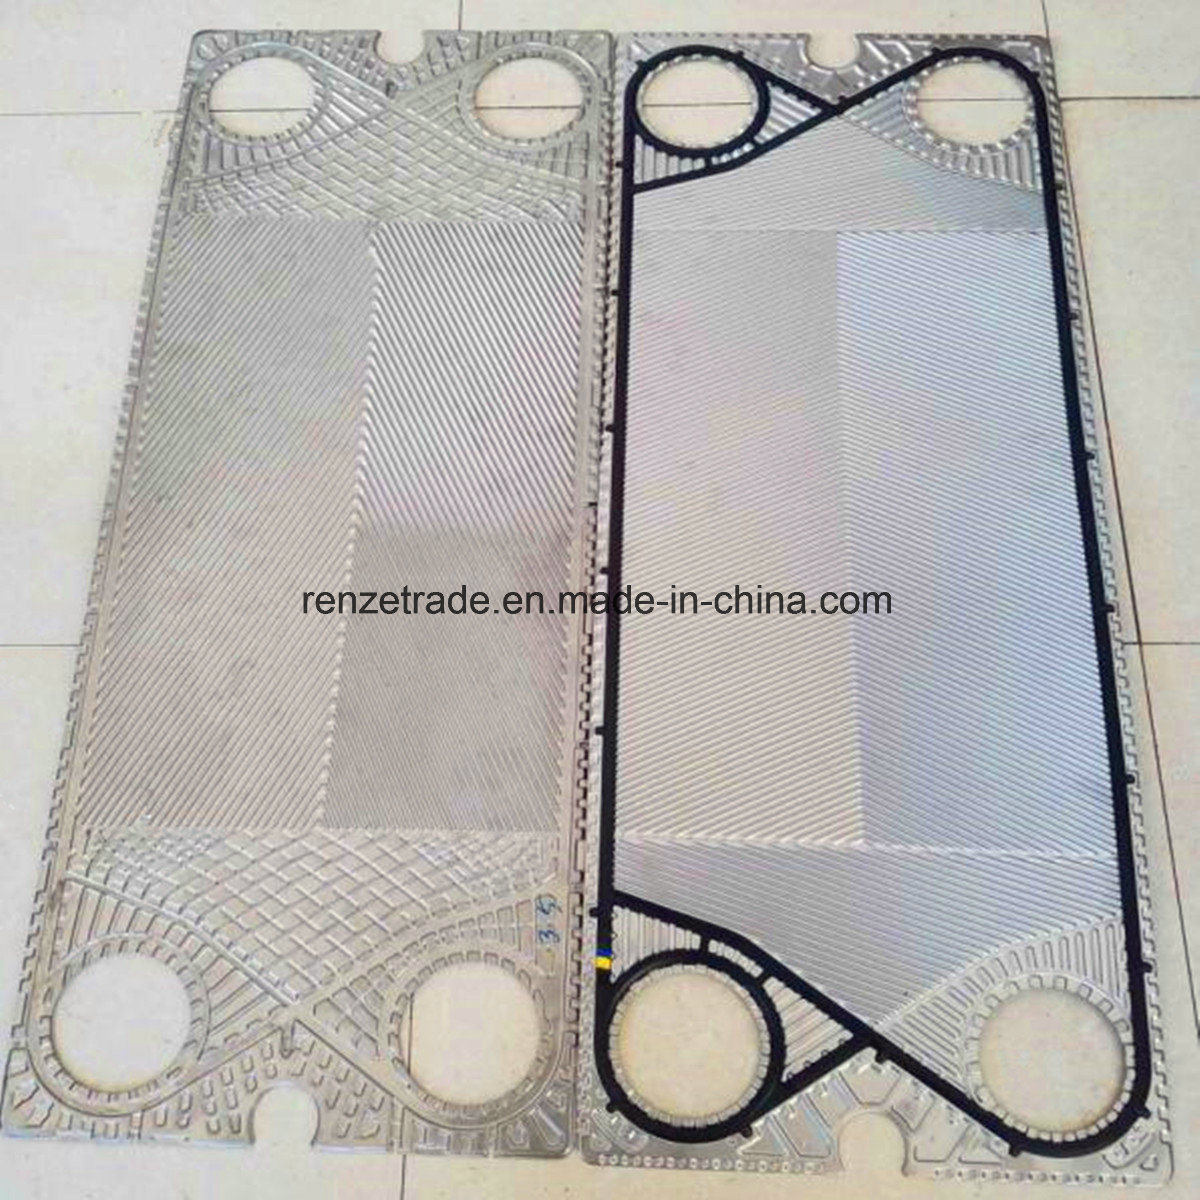 Sigma Plate Heat Exchanger Spare Parts 0.5mm/0.6mm Flow Channel Plate Replacement